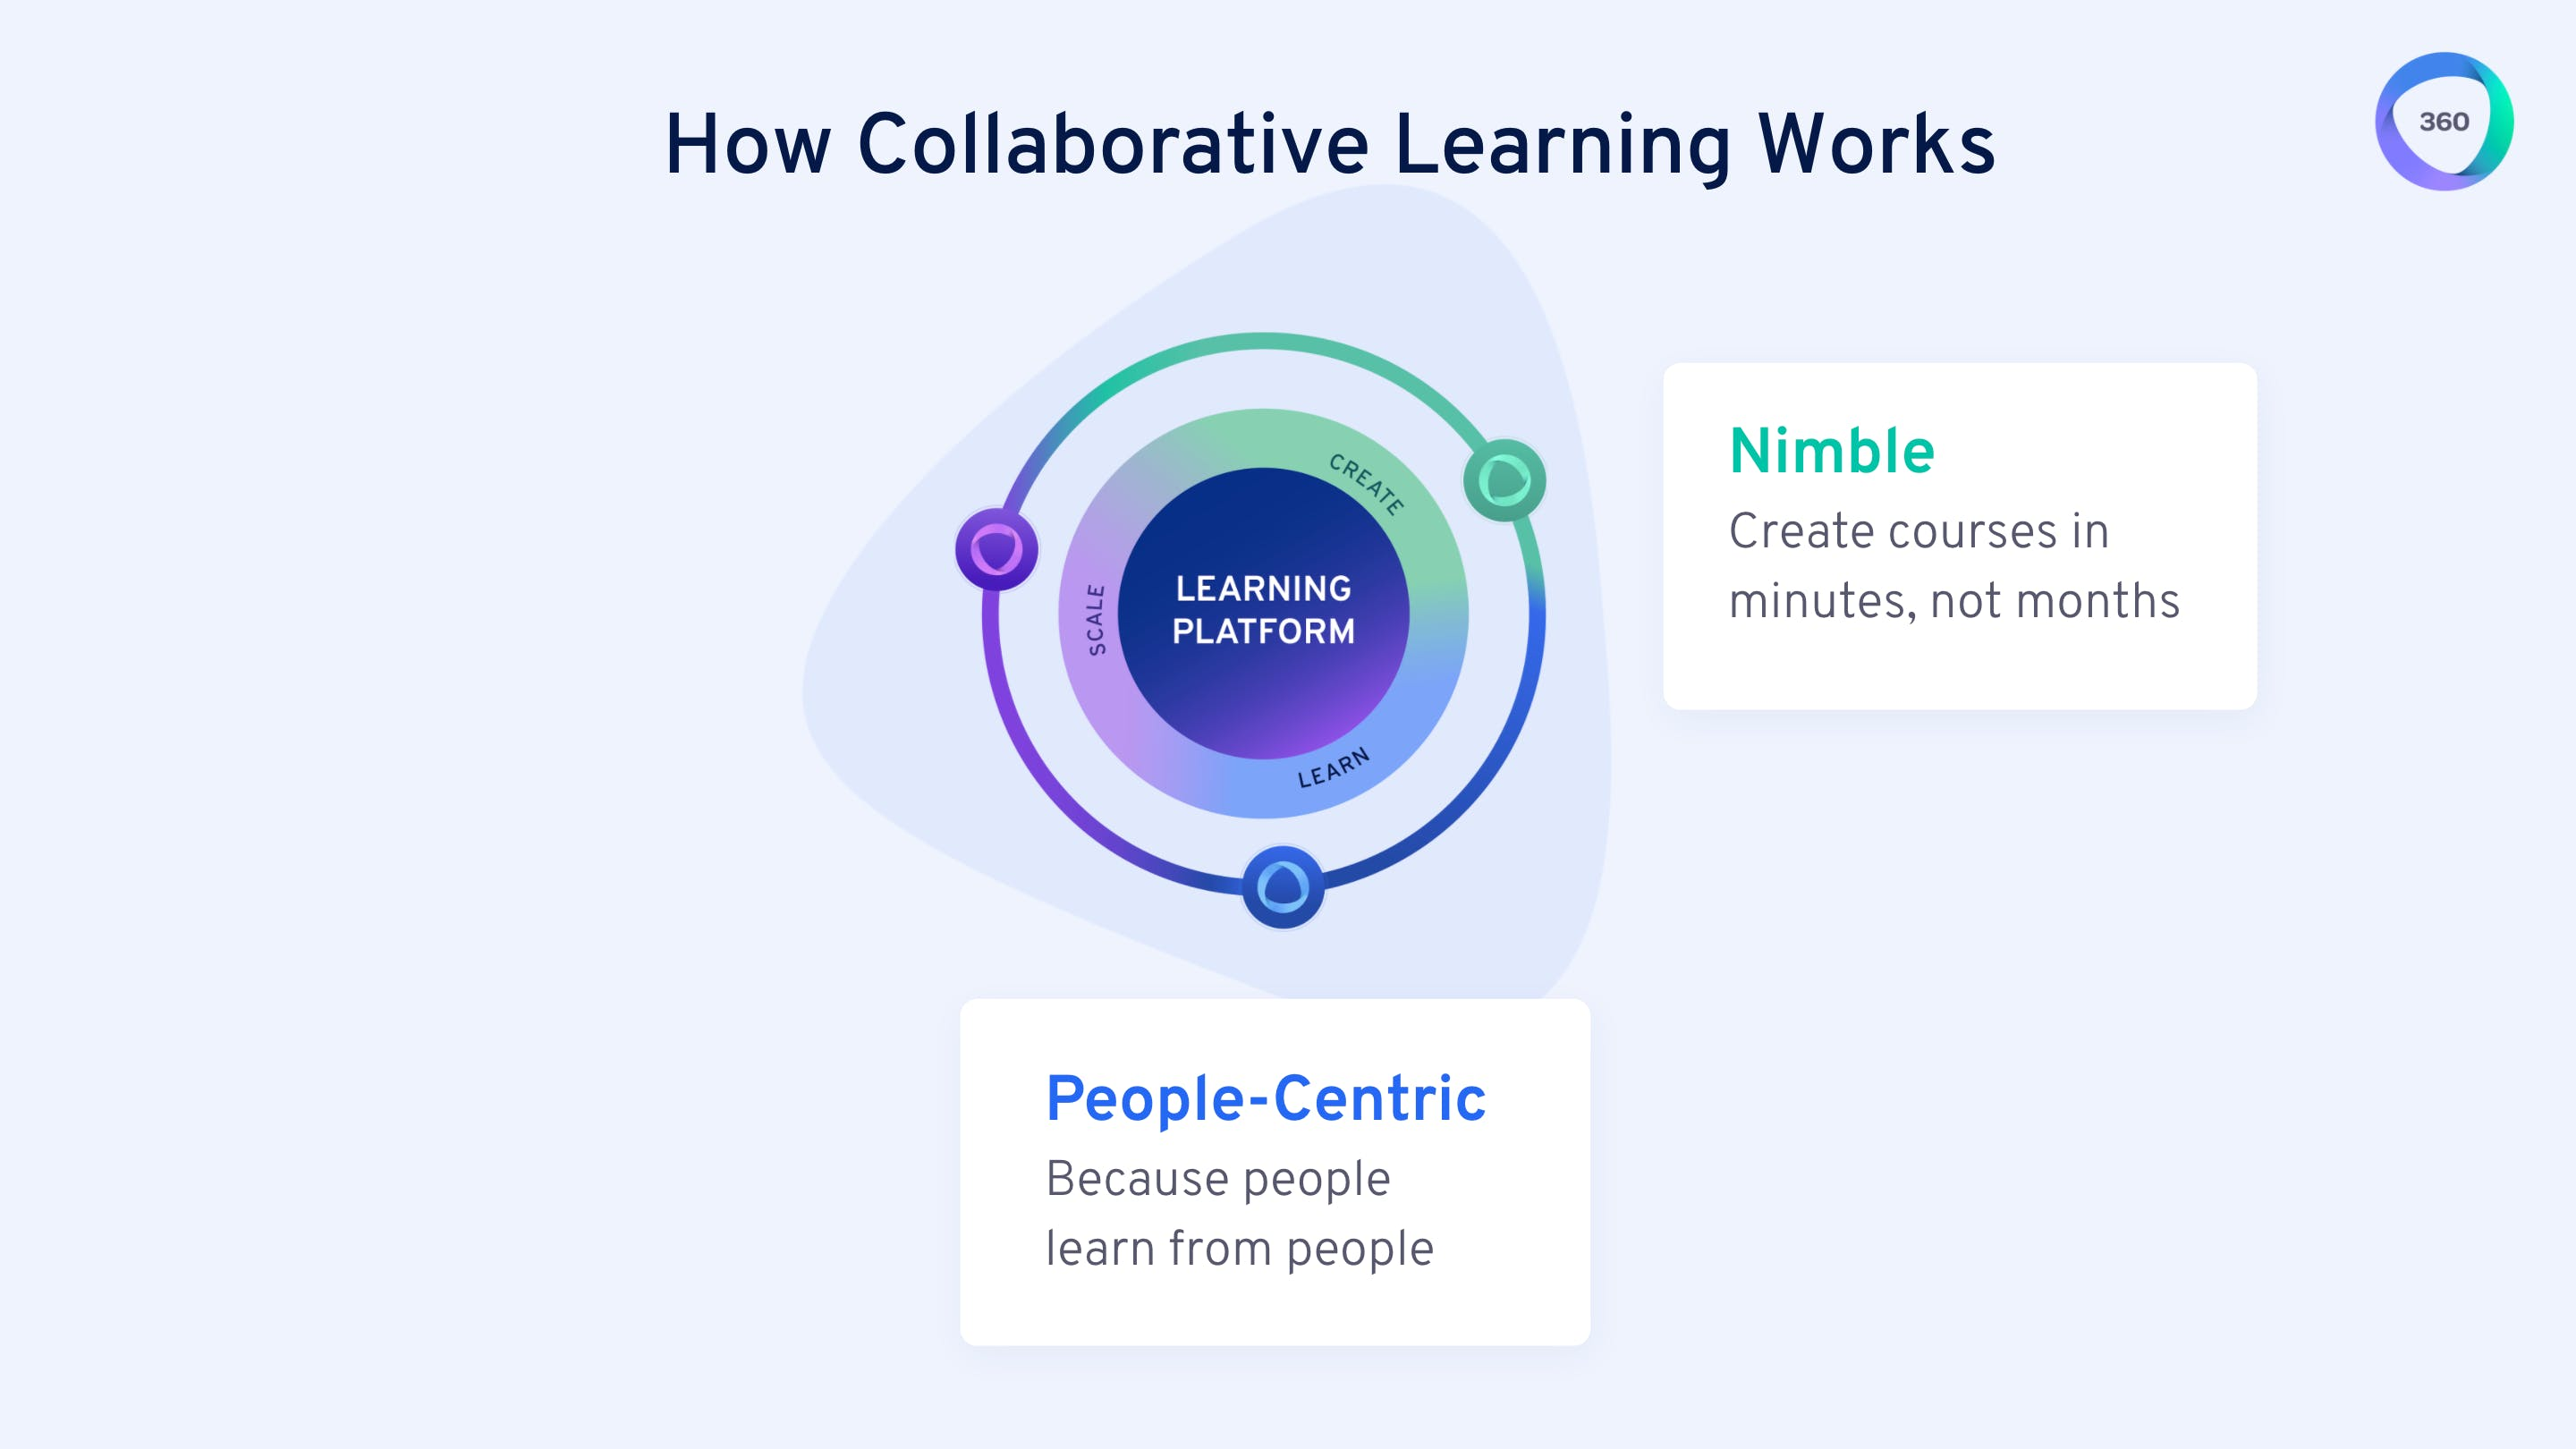 Collaborative Learning is people-centric